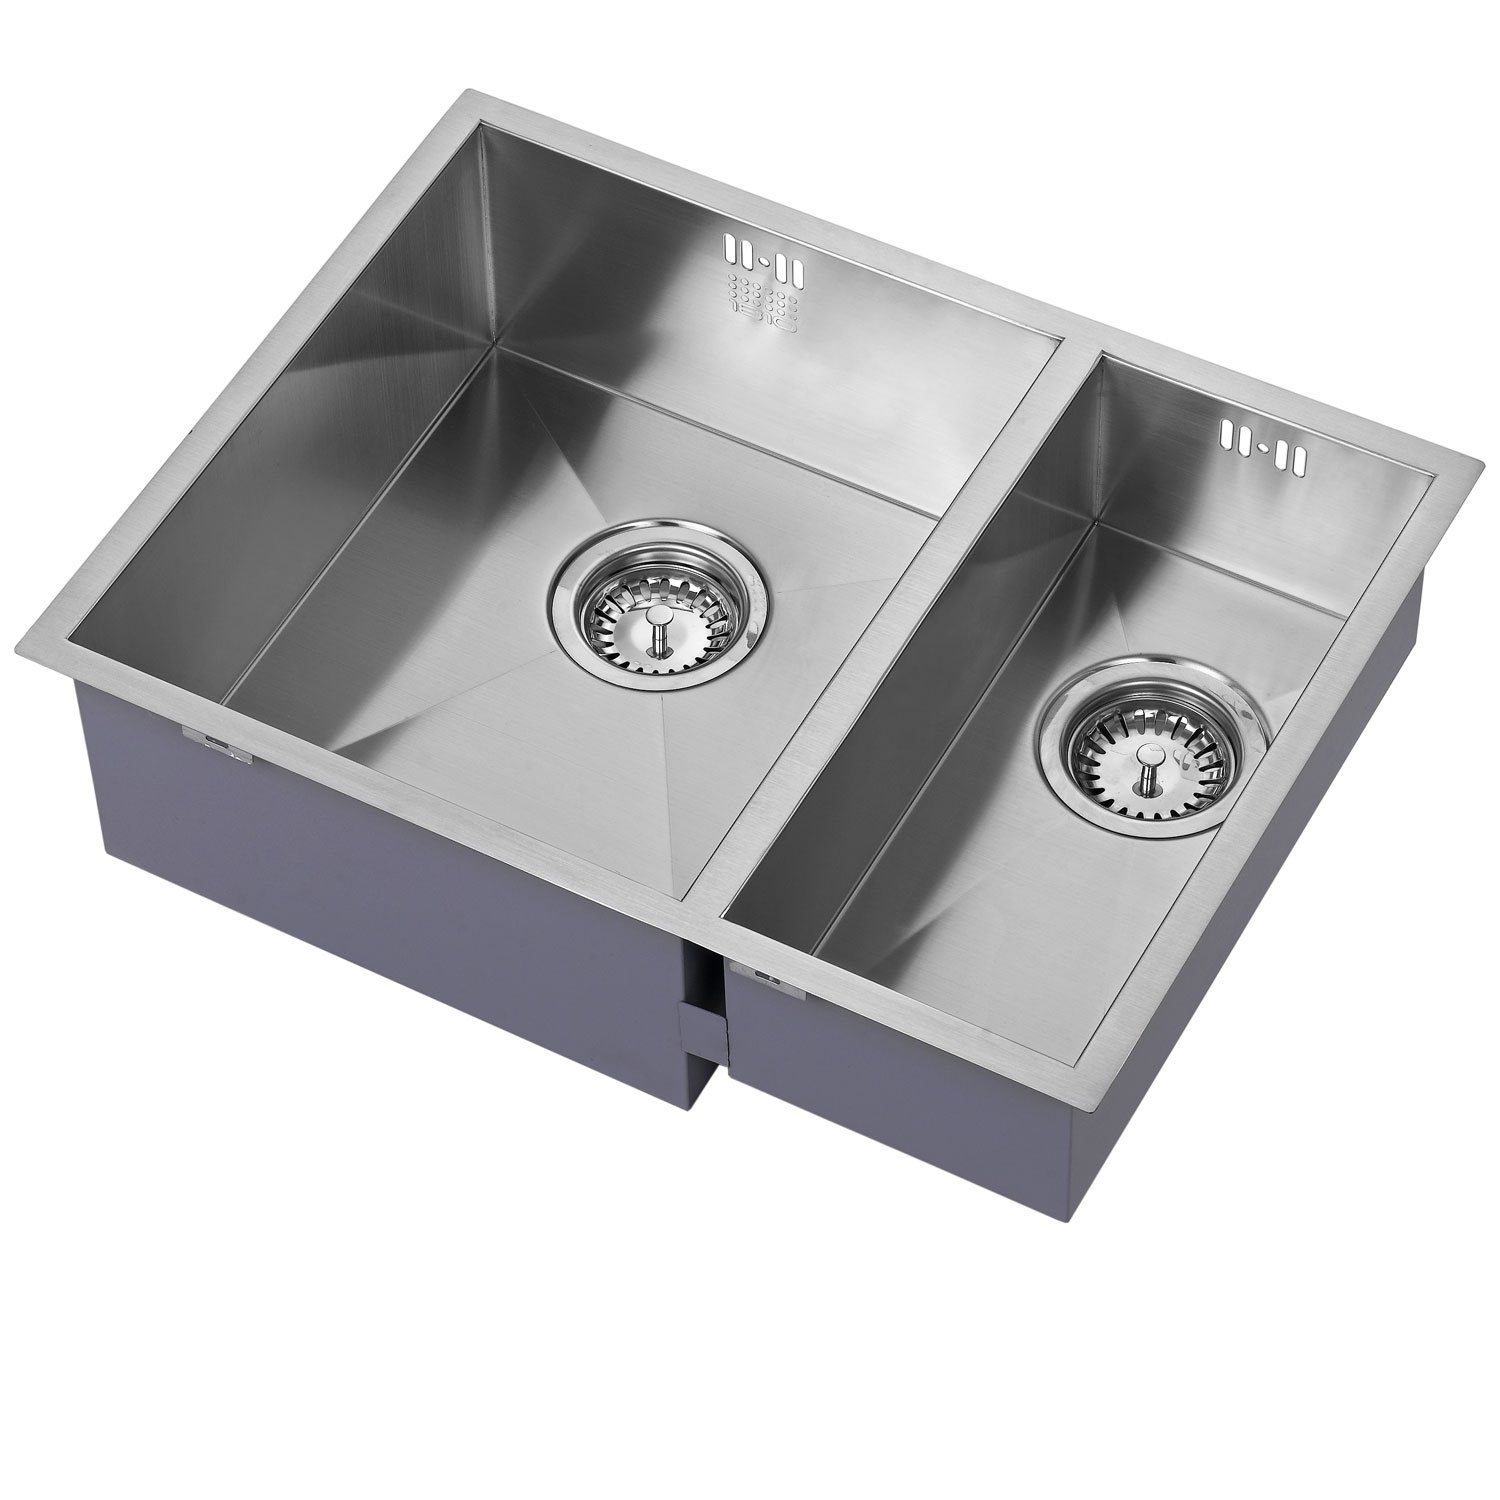 The 1810 Company Zenduo 340/180U 1.5 Bowl Kitchen Sink - Left Handed-0